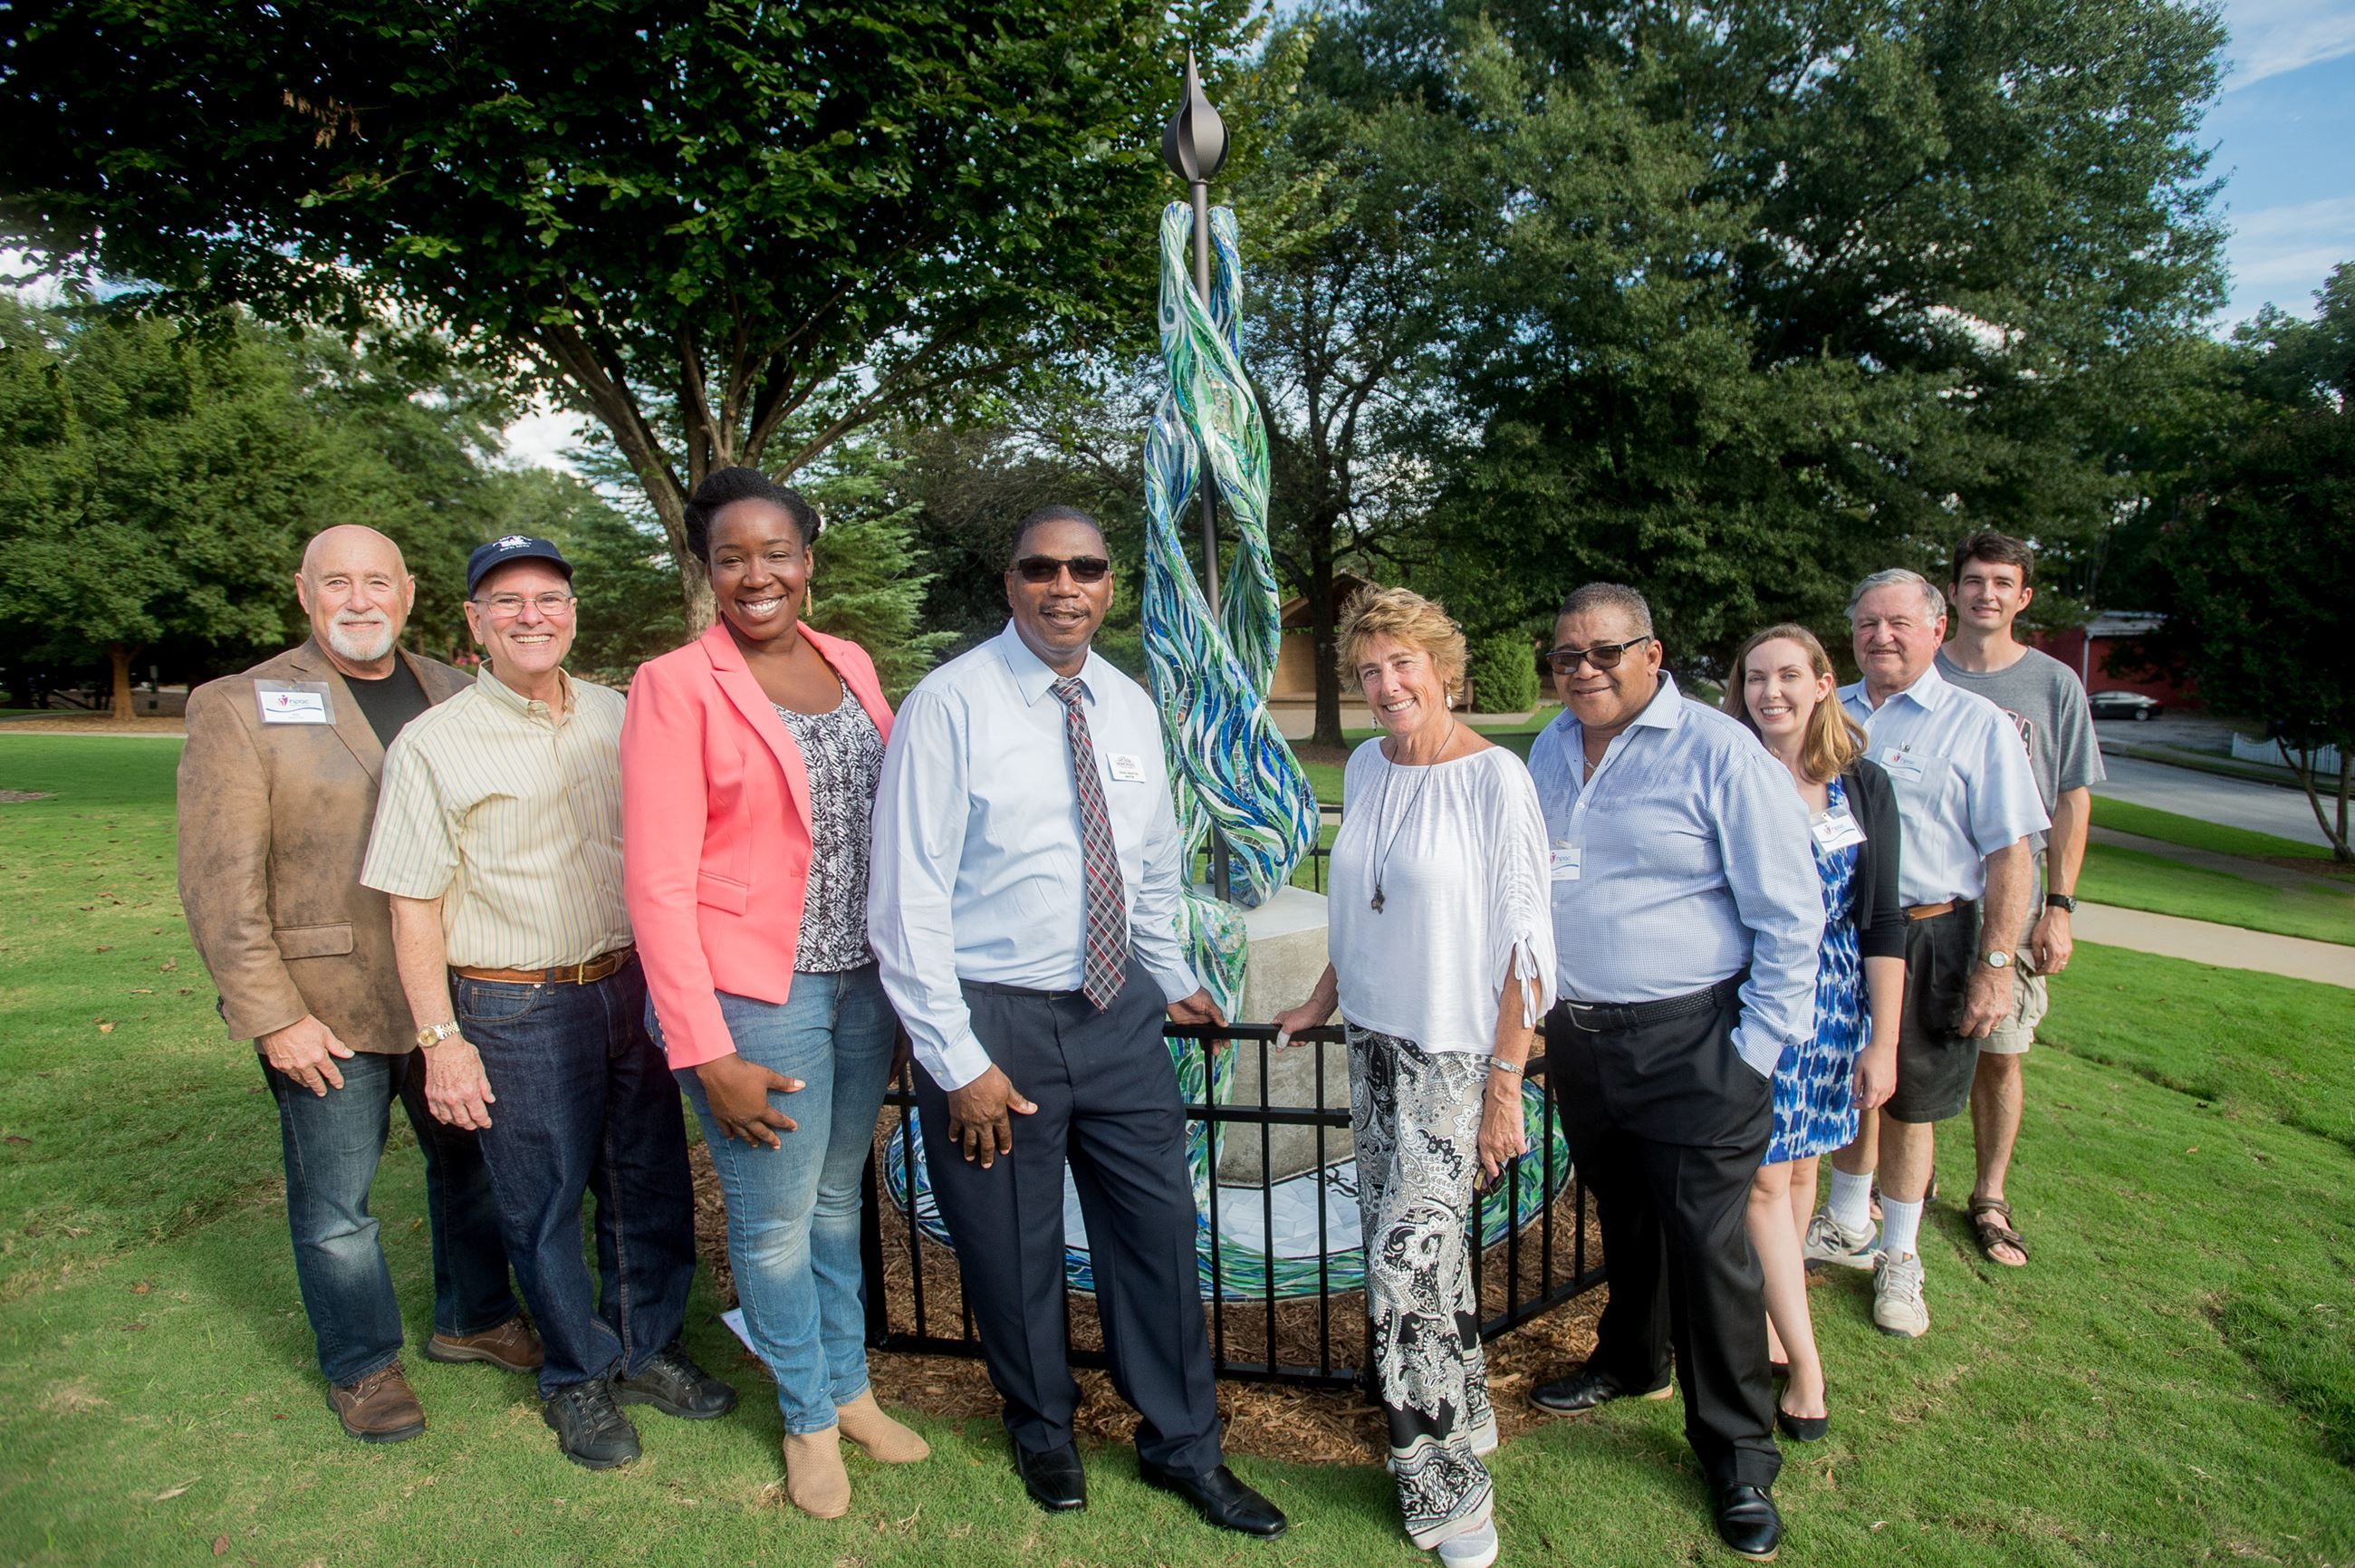 093018_norcross_art_unveiling-86